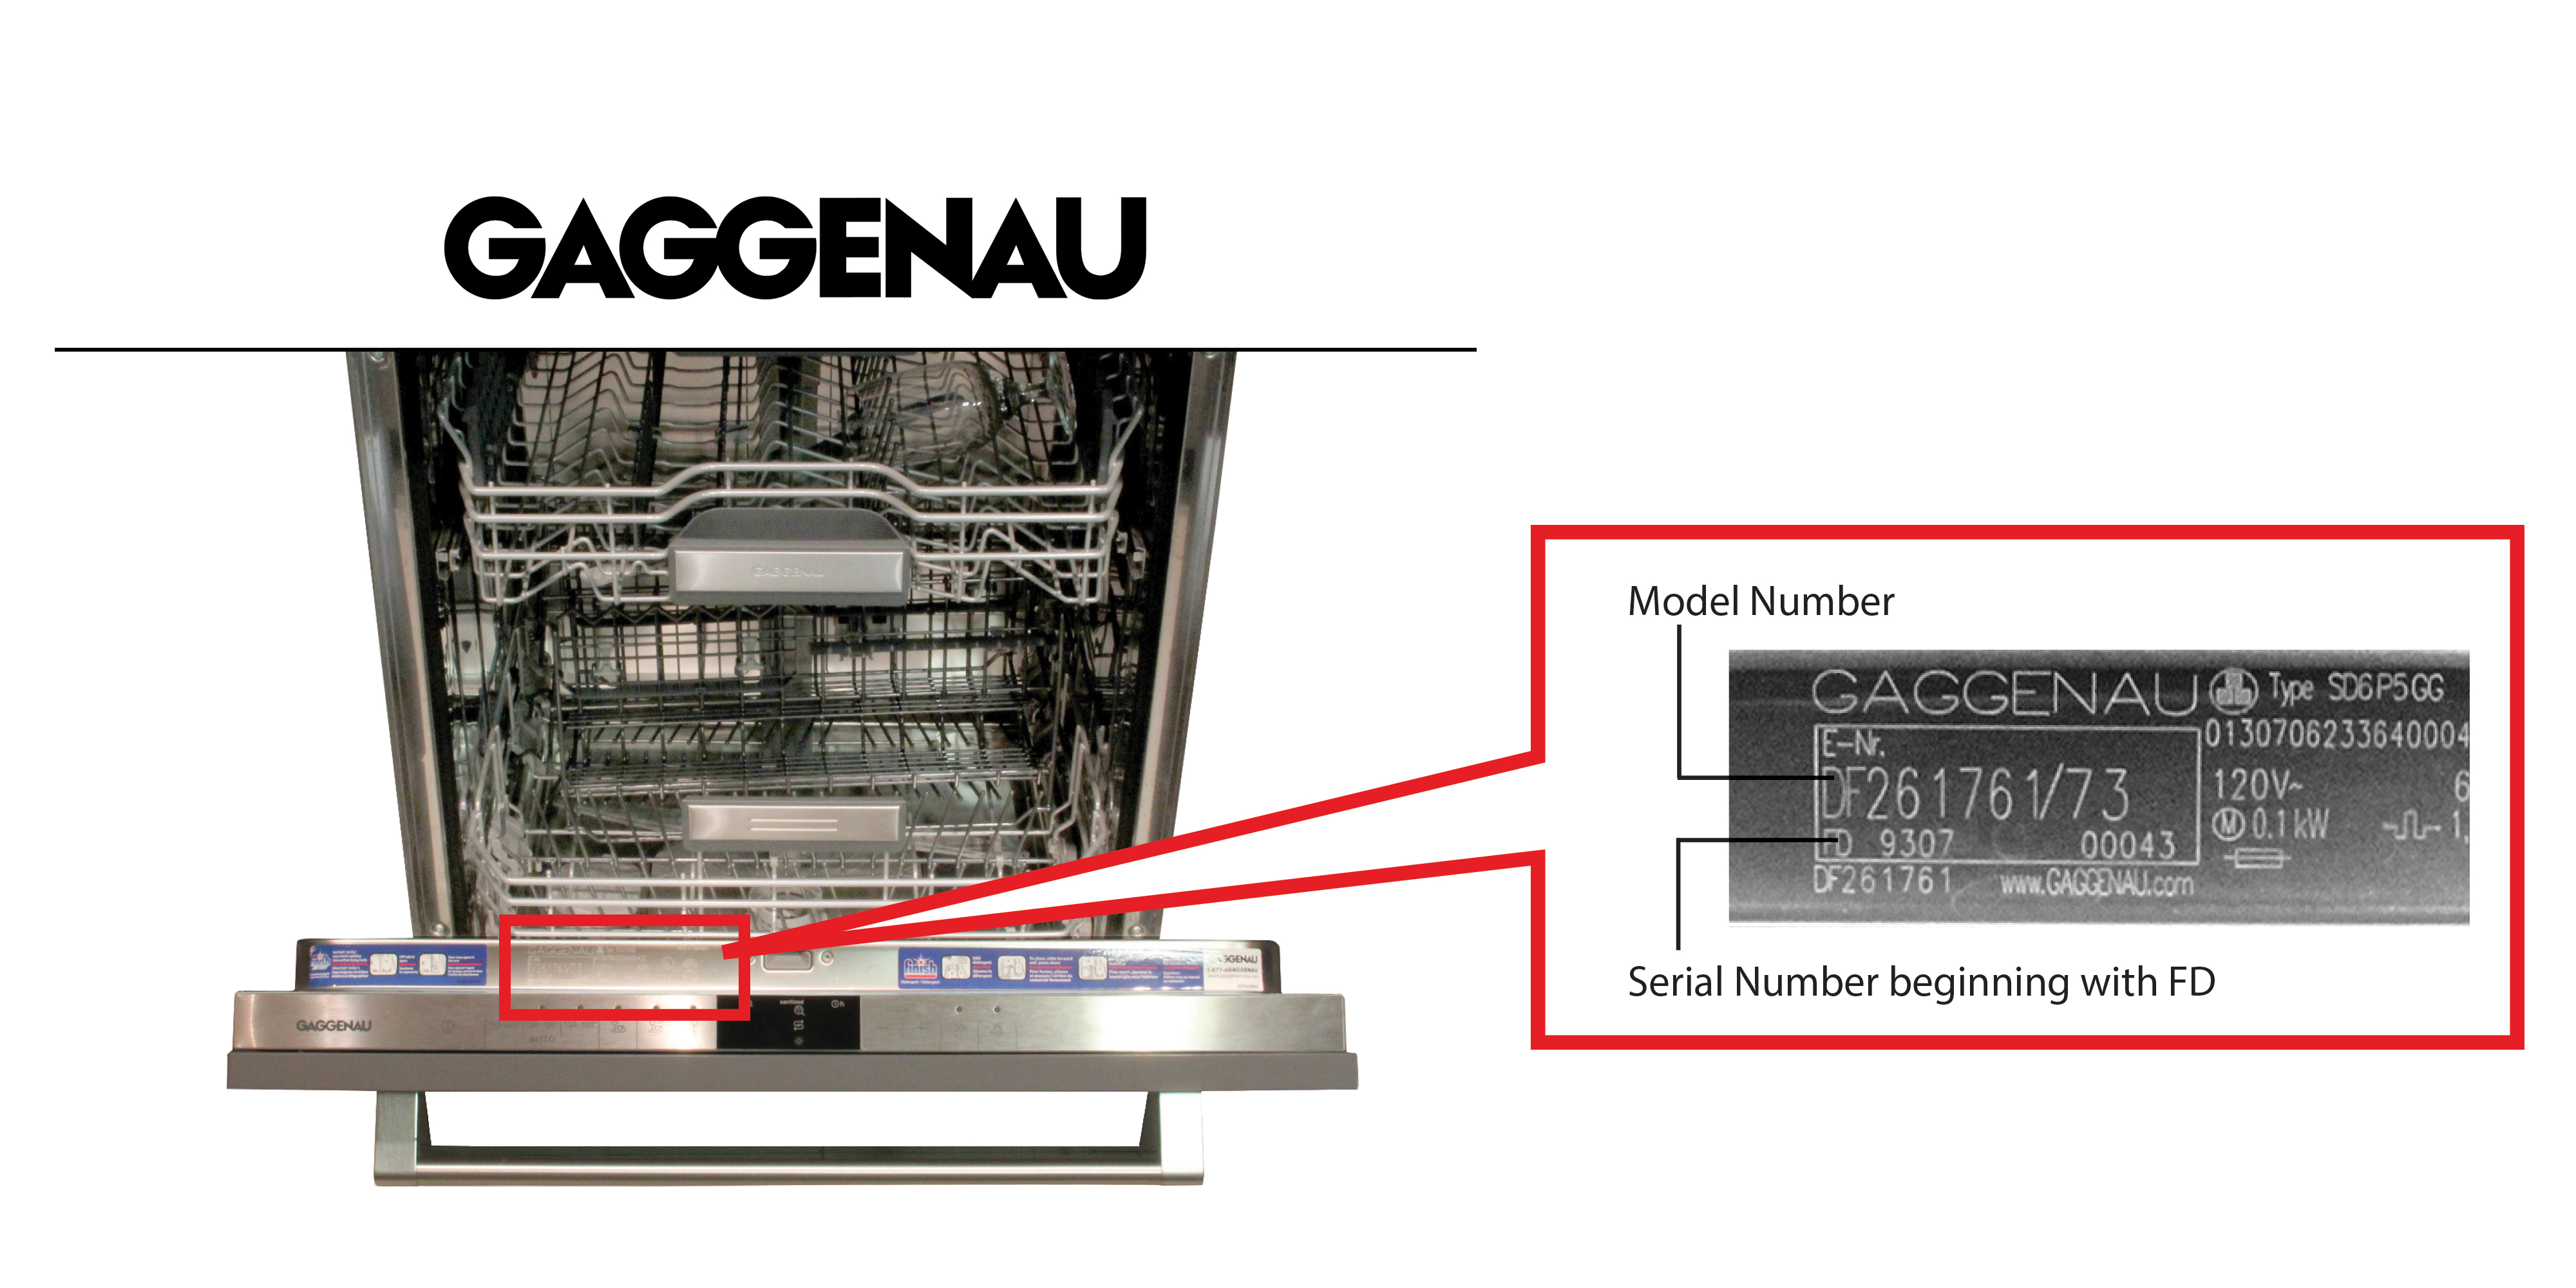 hight resolution of gaggenau dishwasher model and serial number location